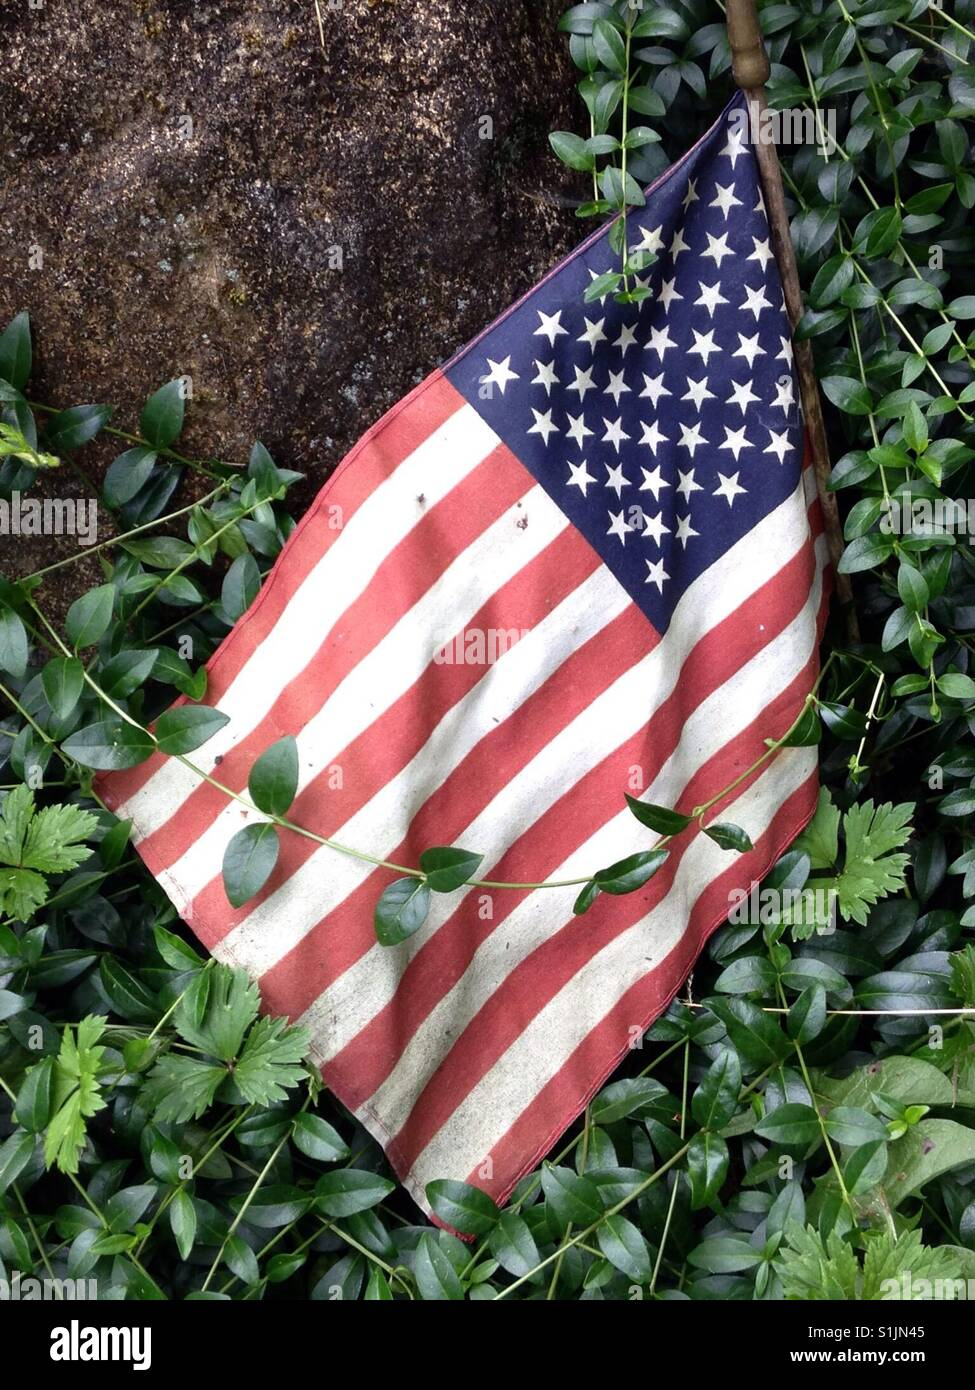 Well-worn American flag being overtaken by vines and foliage - Stock Image